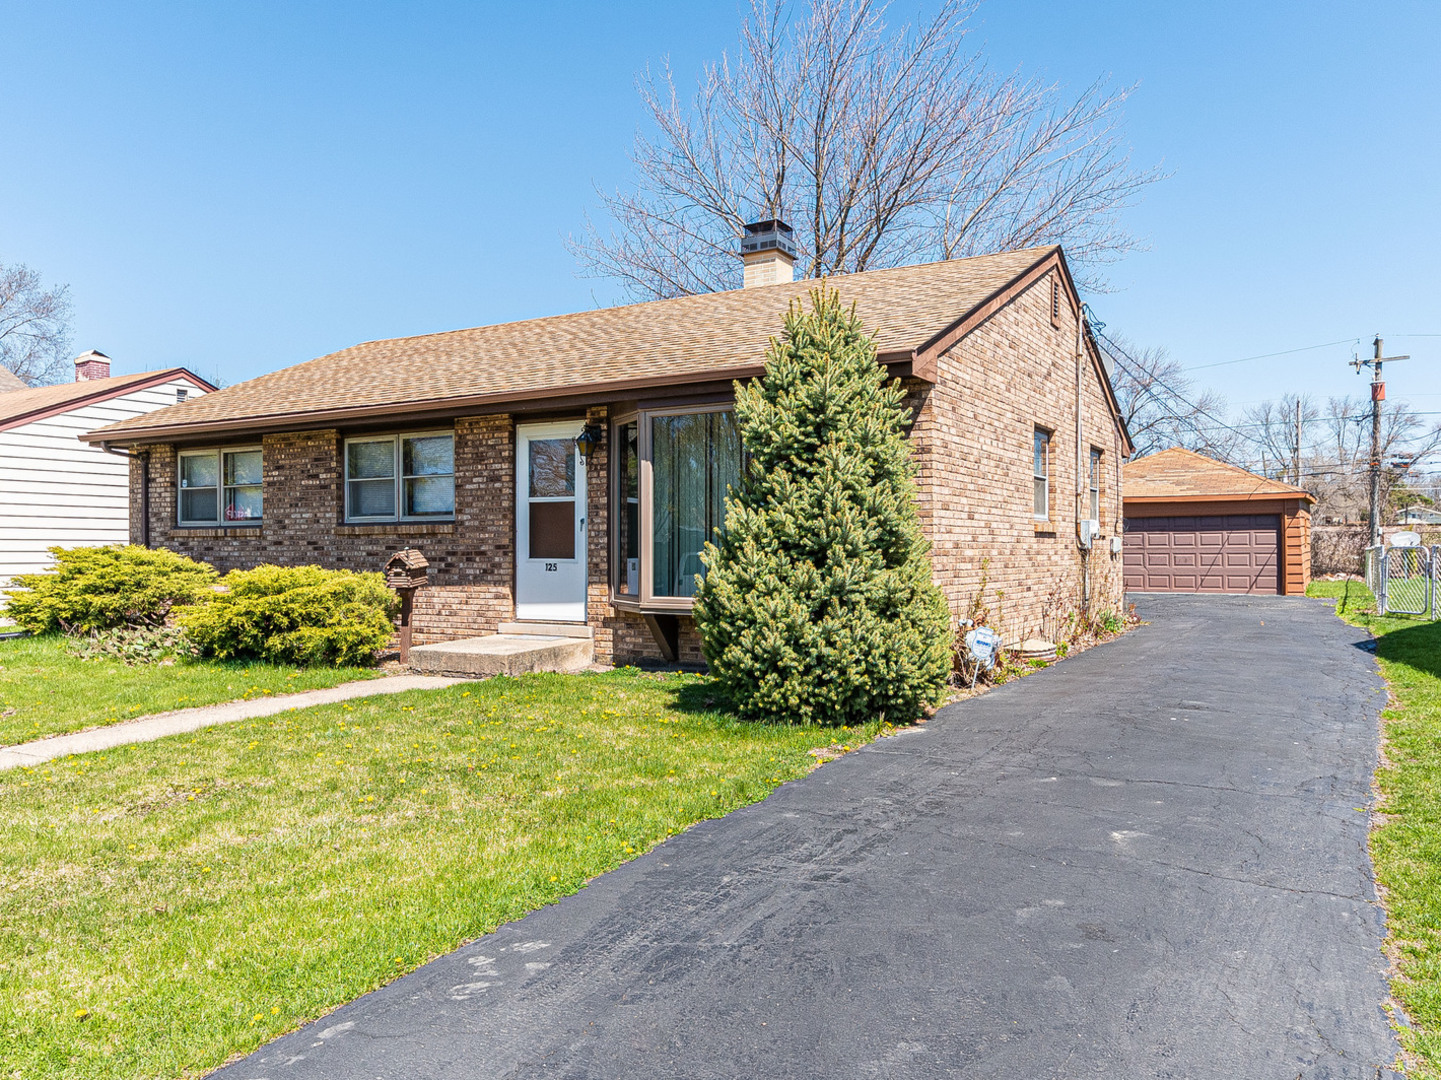 125 North Warrington Road, Des Plaines in Cook County, IL 60016 Home for Sale